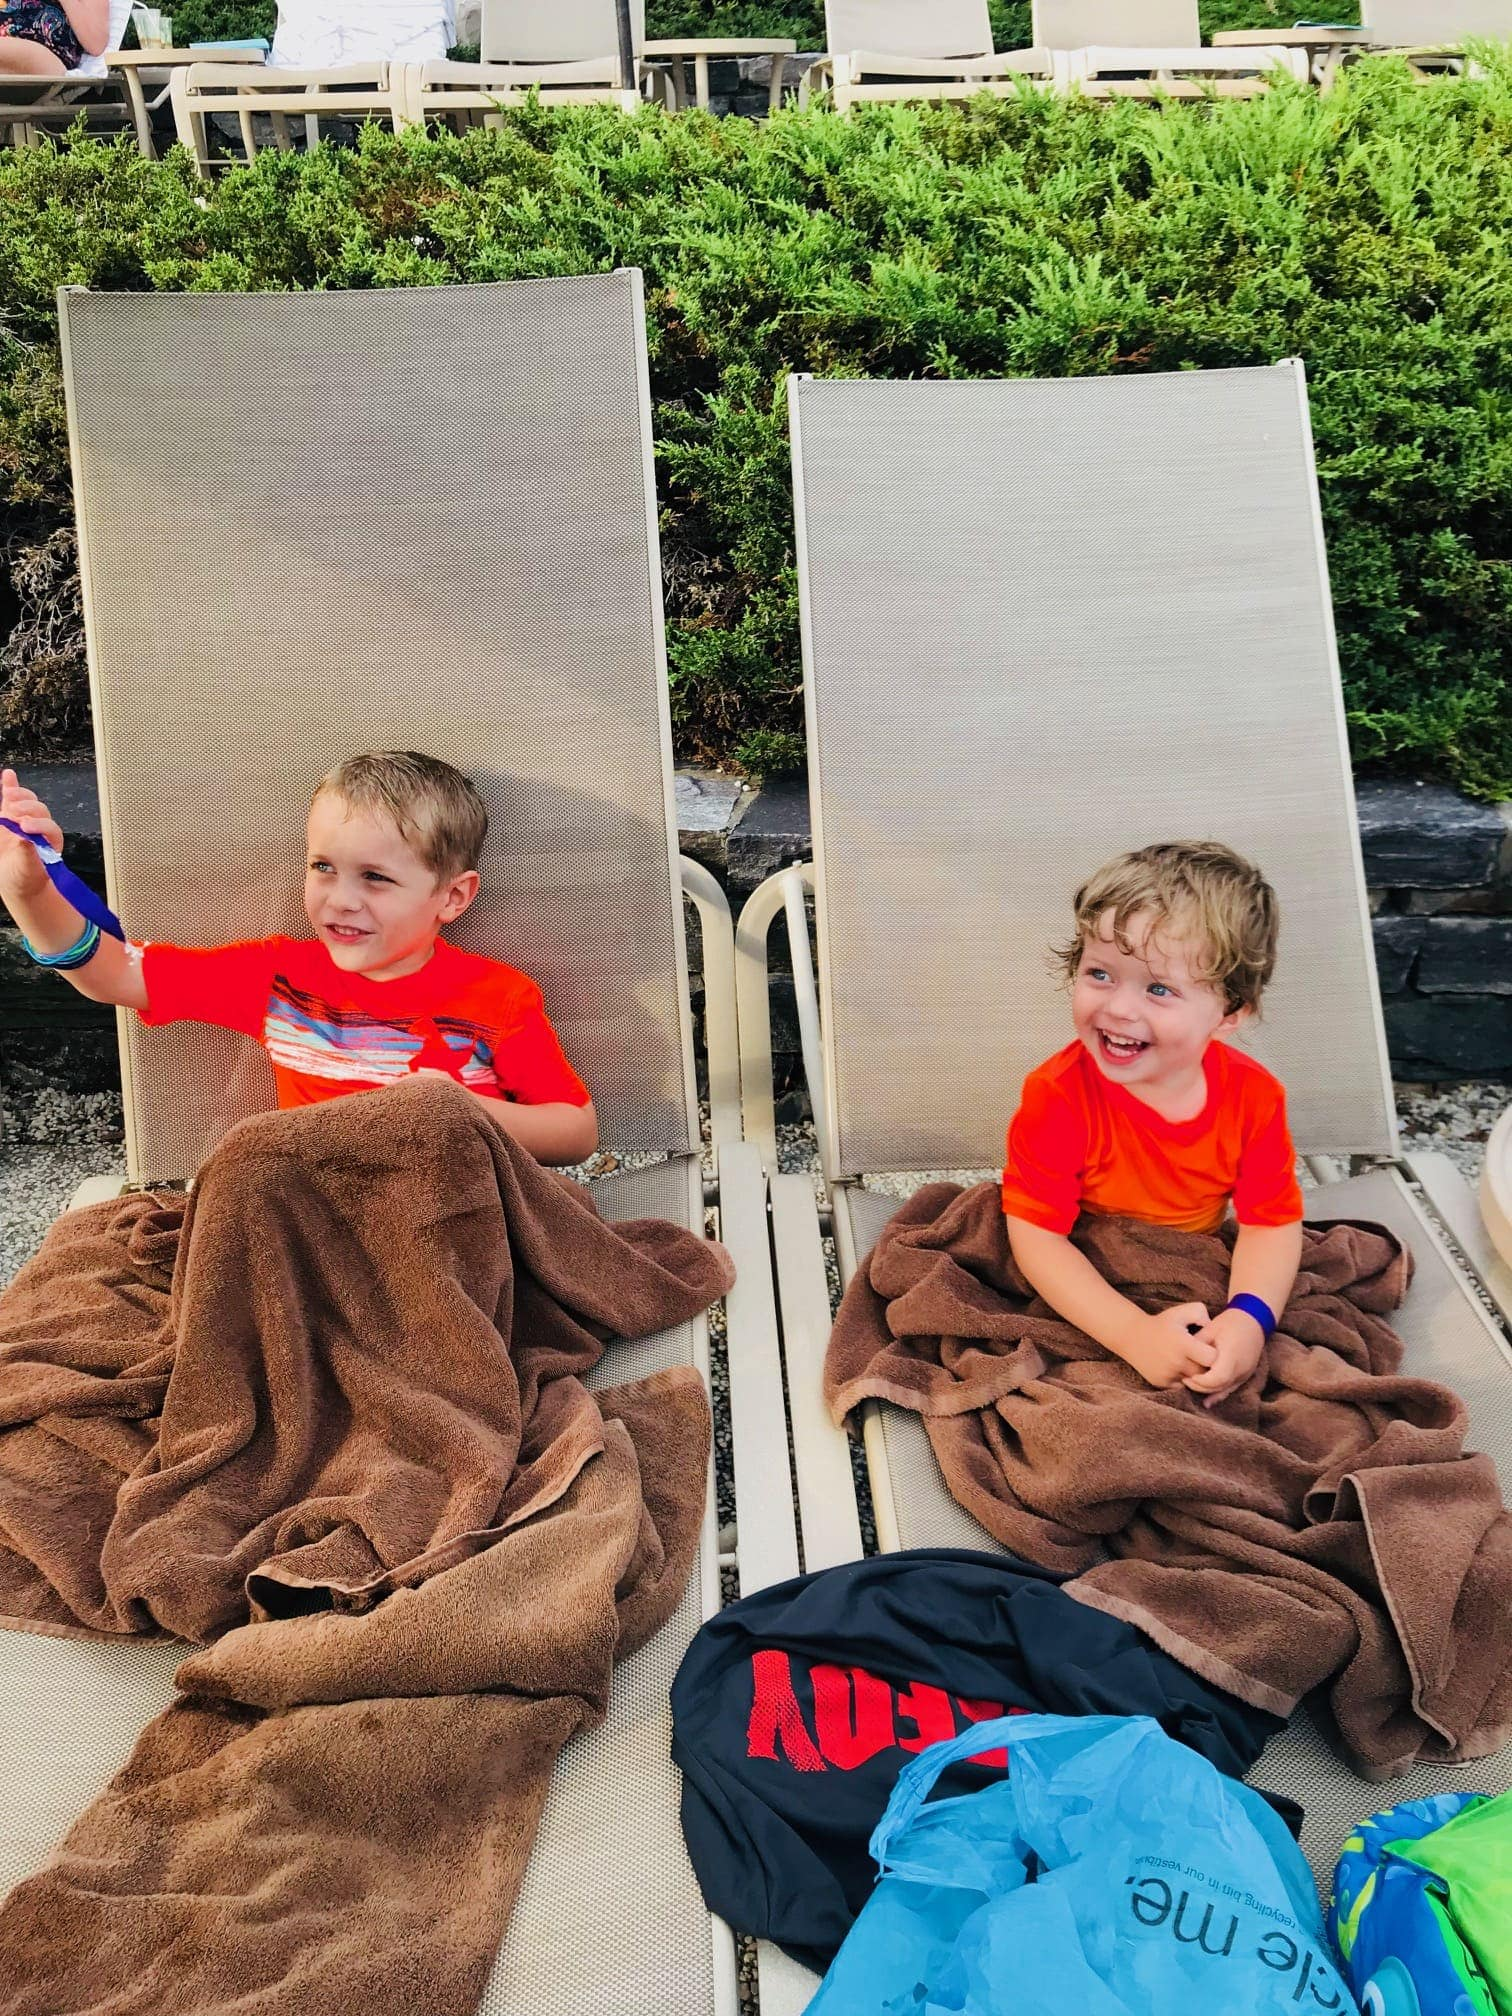 Blake and Eddie in lounge chairs with blankets